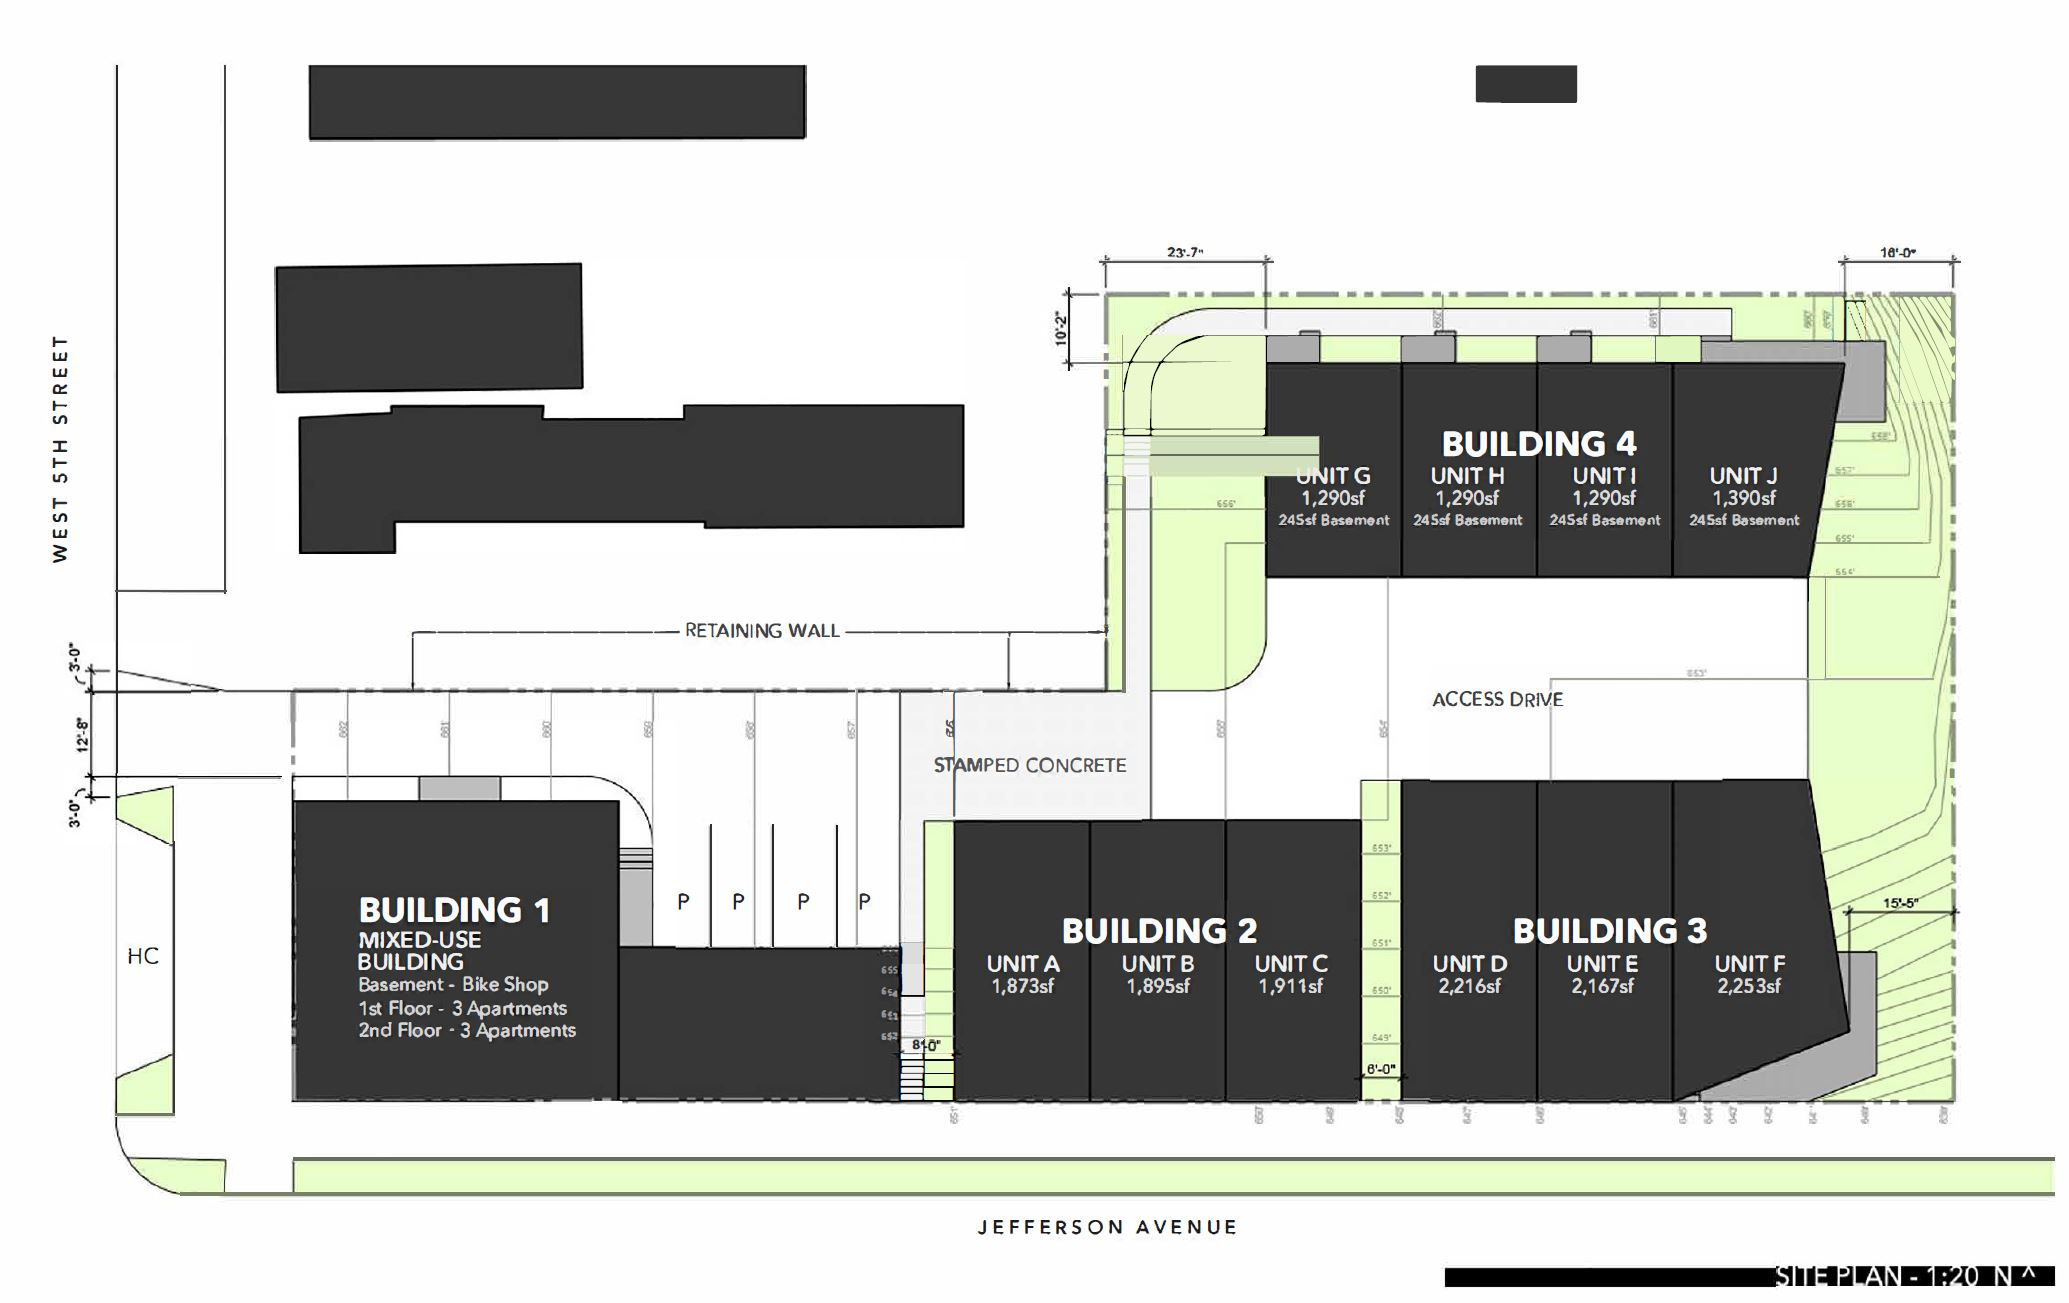 Copy of Site Layout